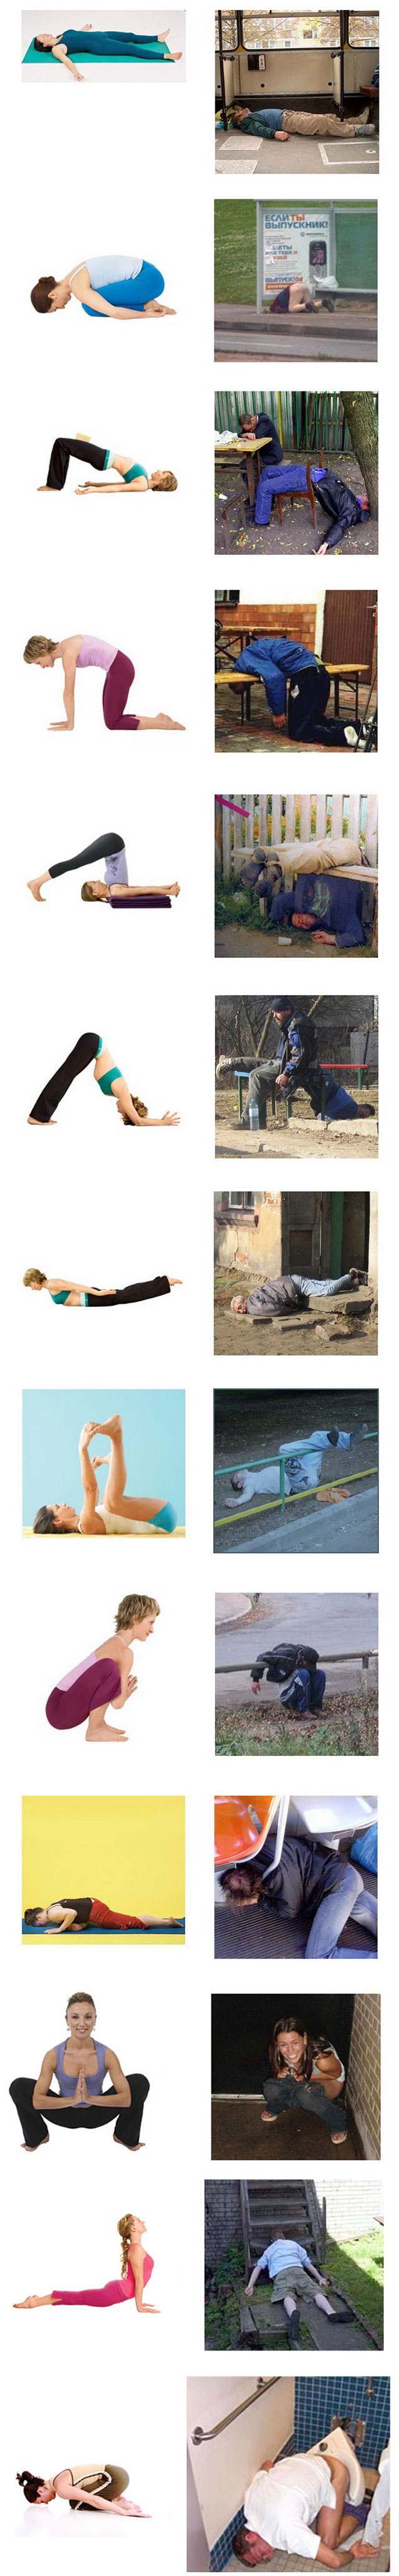 drunk-yoga-photos-funny